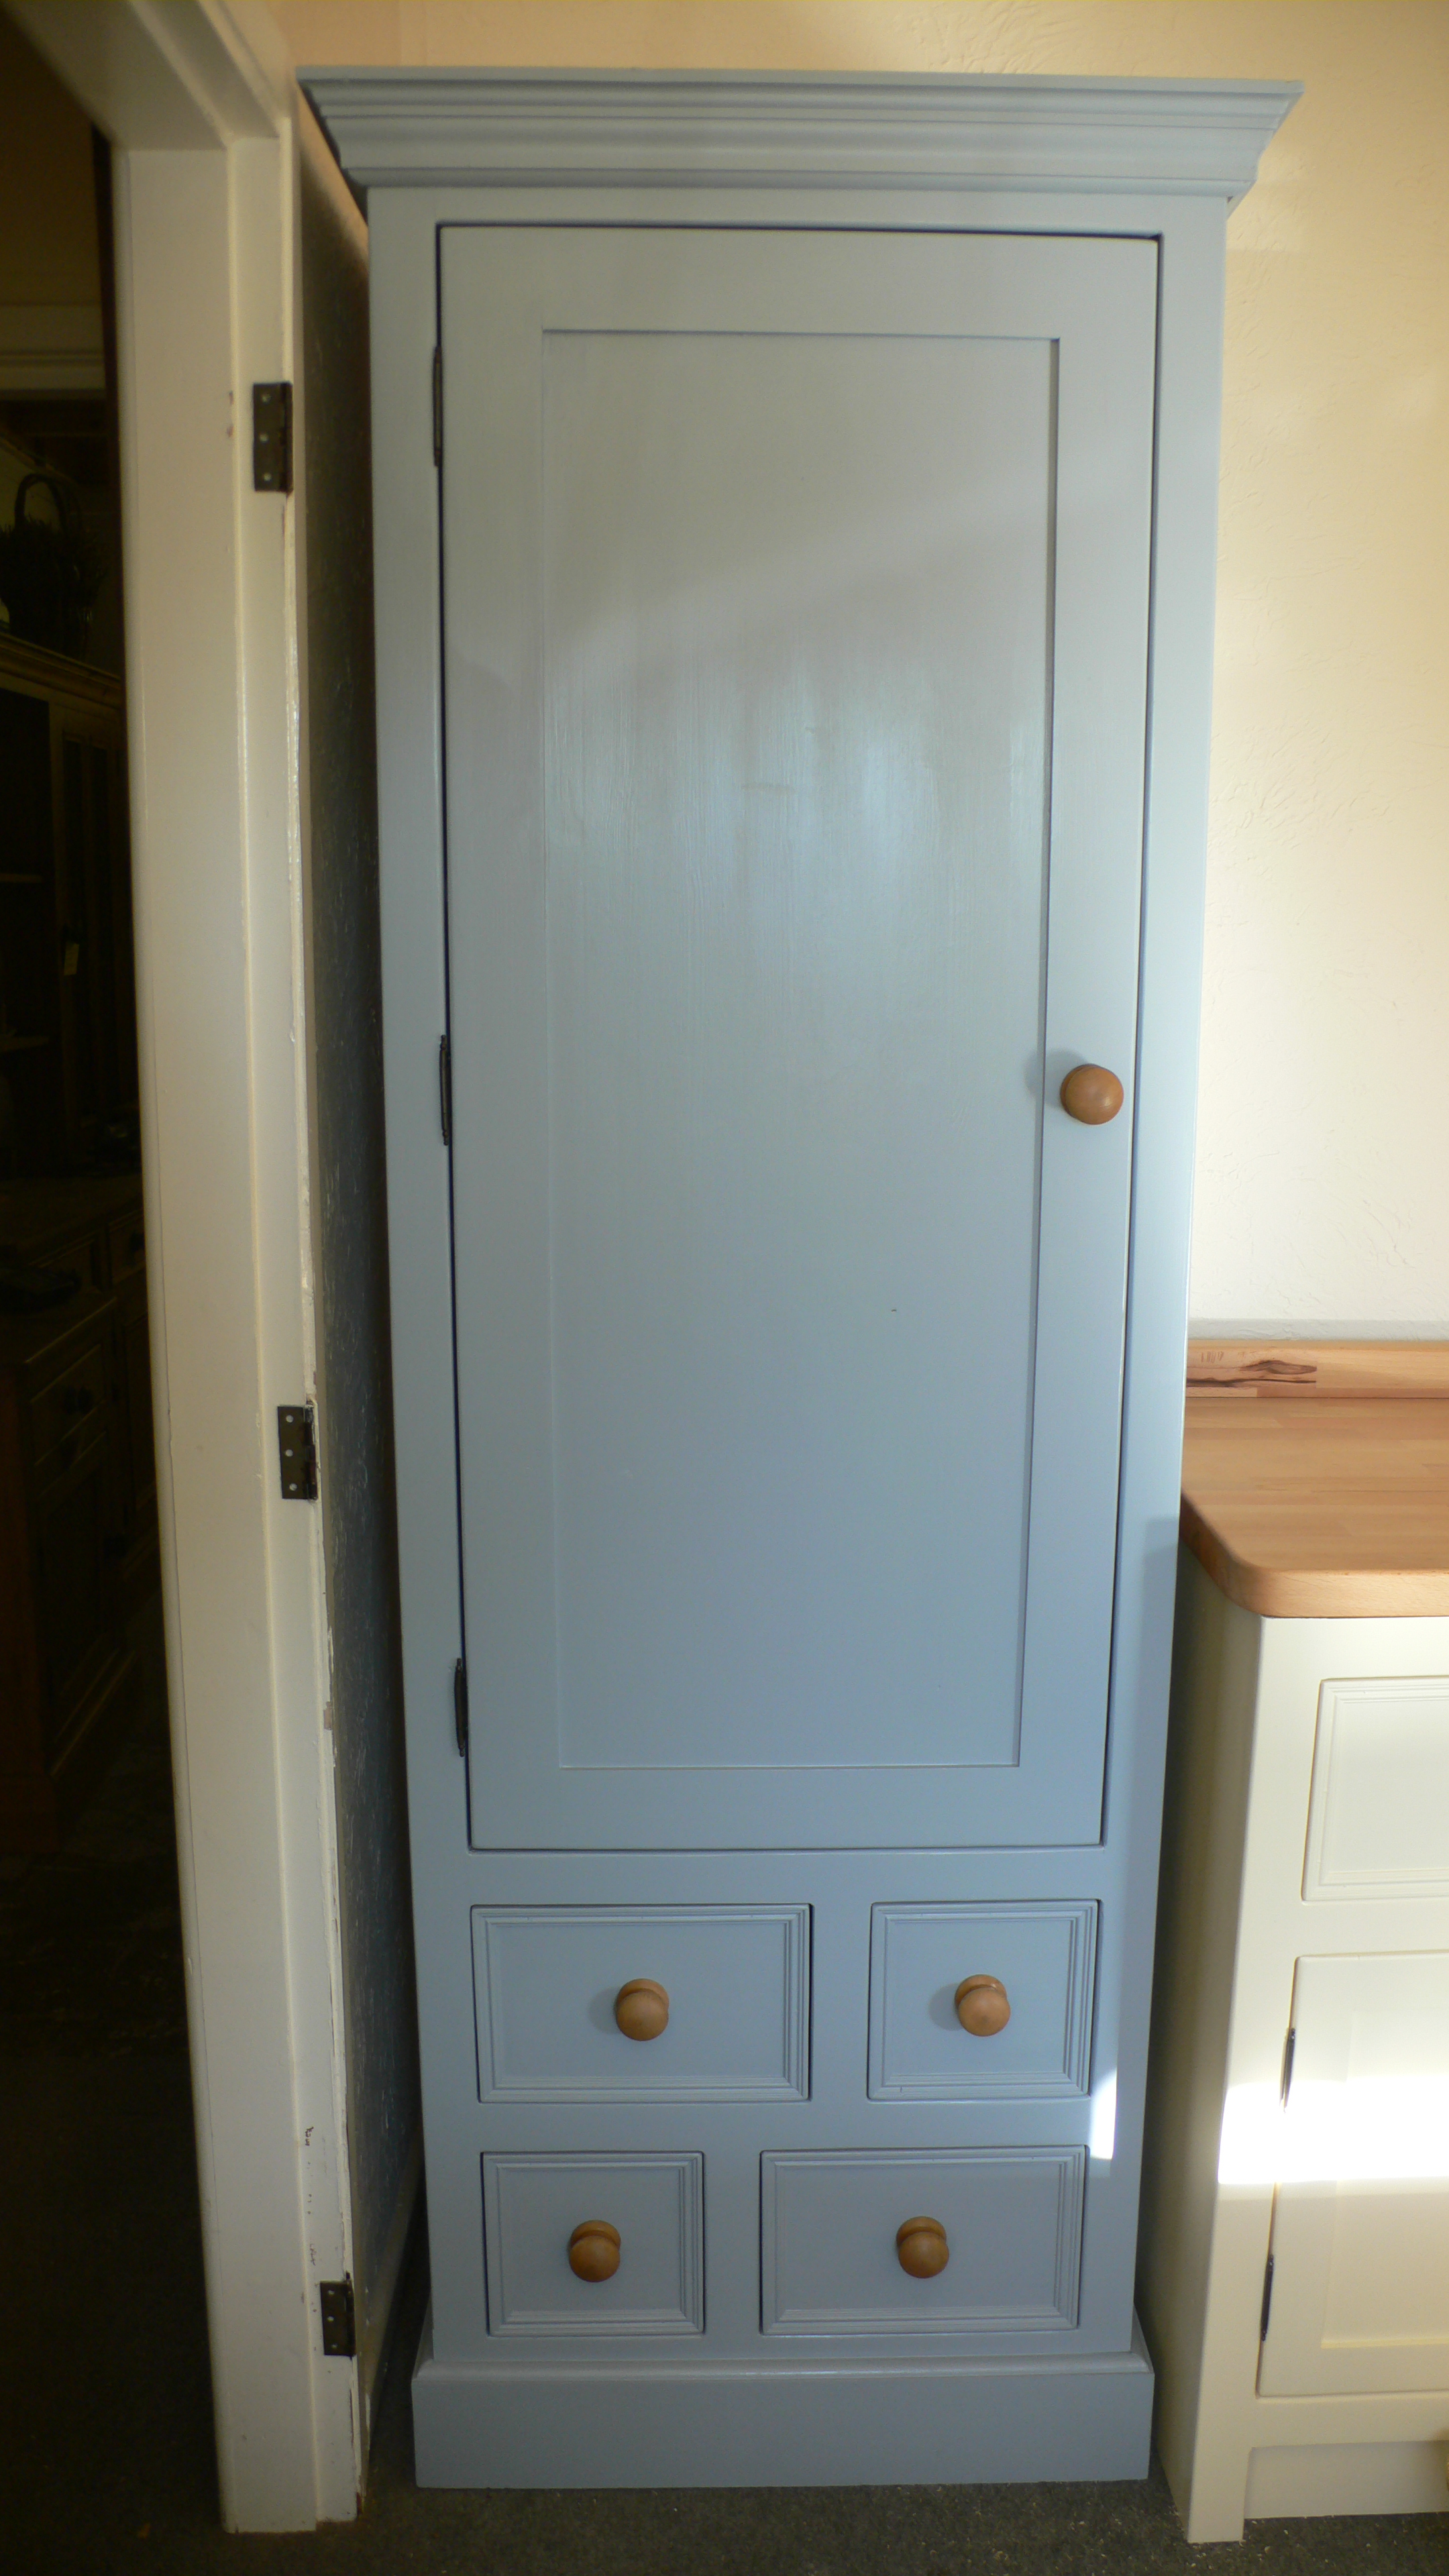 kitchen units slimline larder cupboard the olive branch kitchens ltd